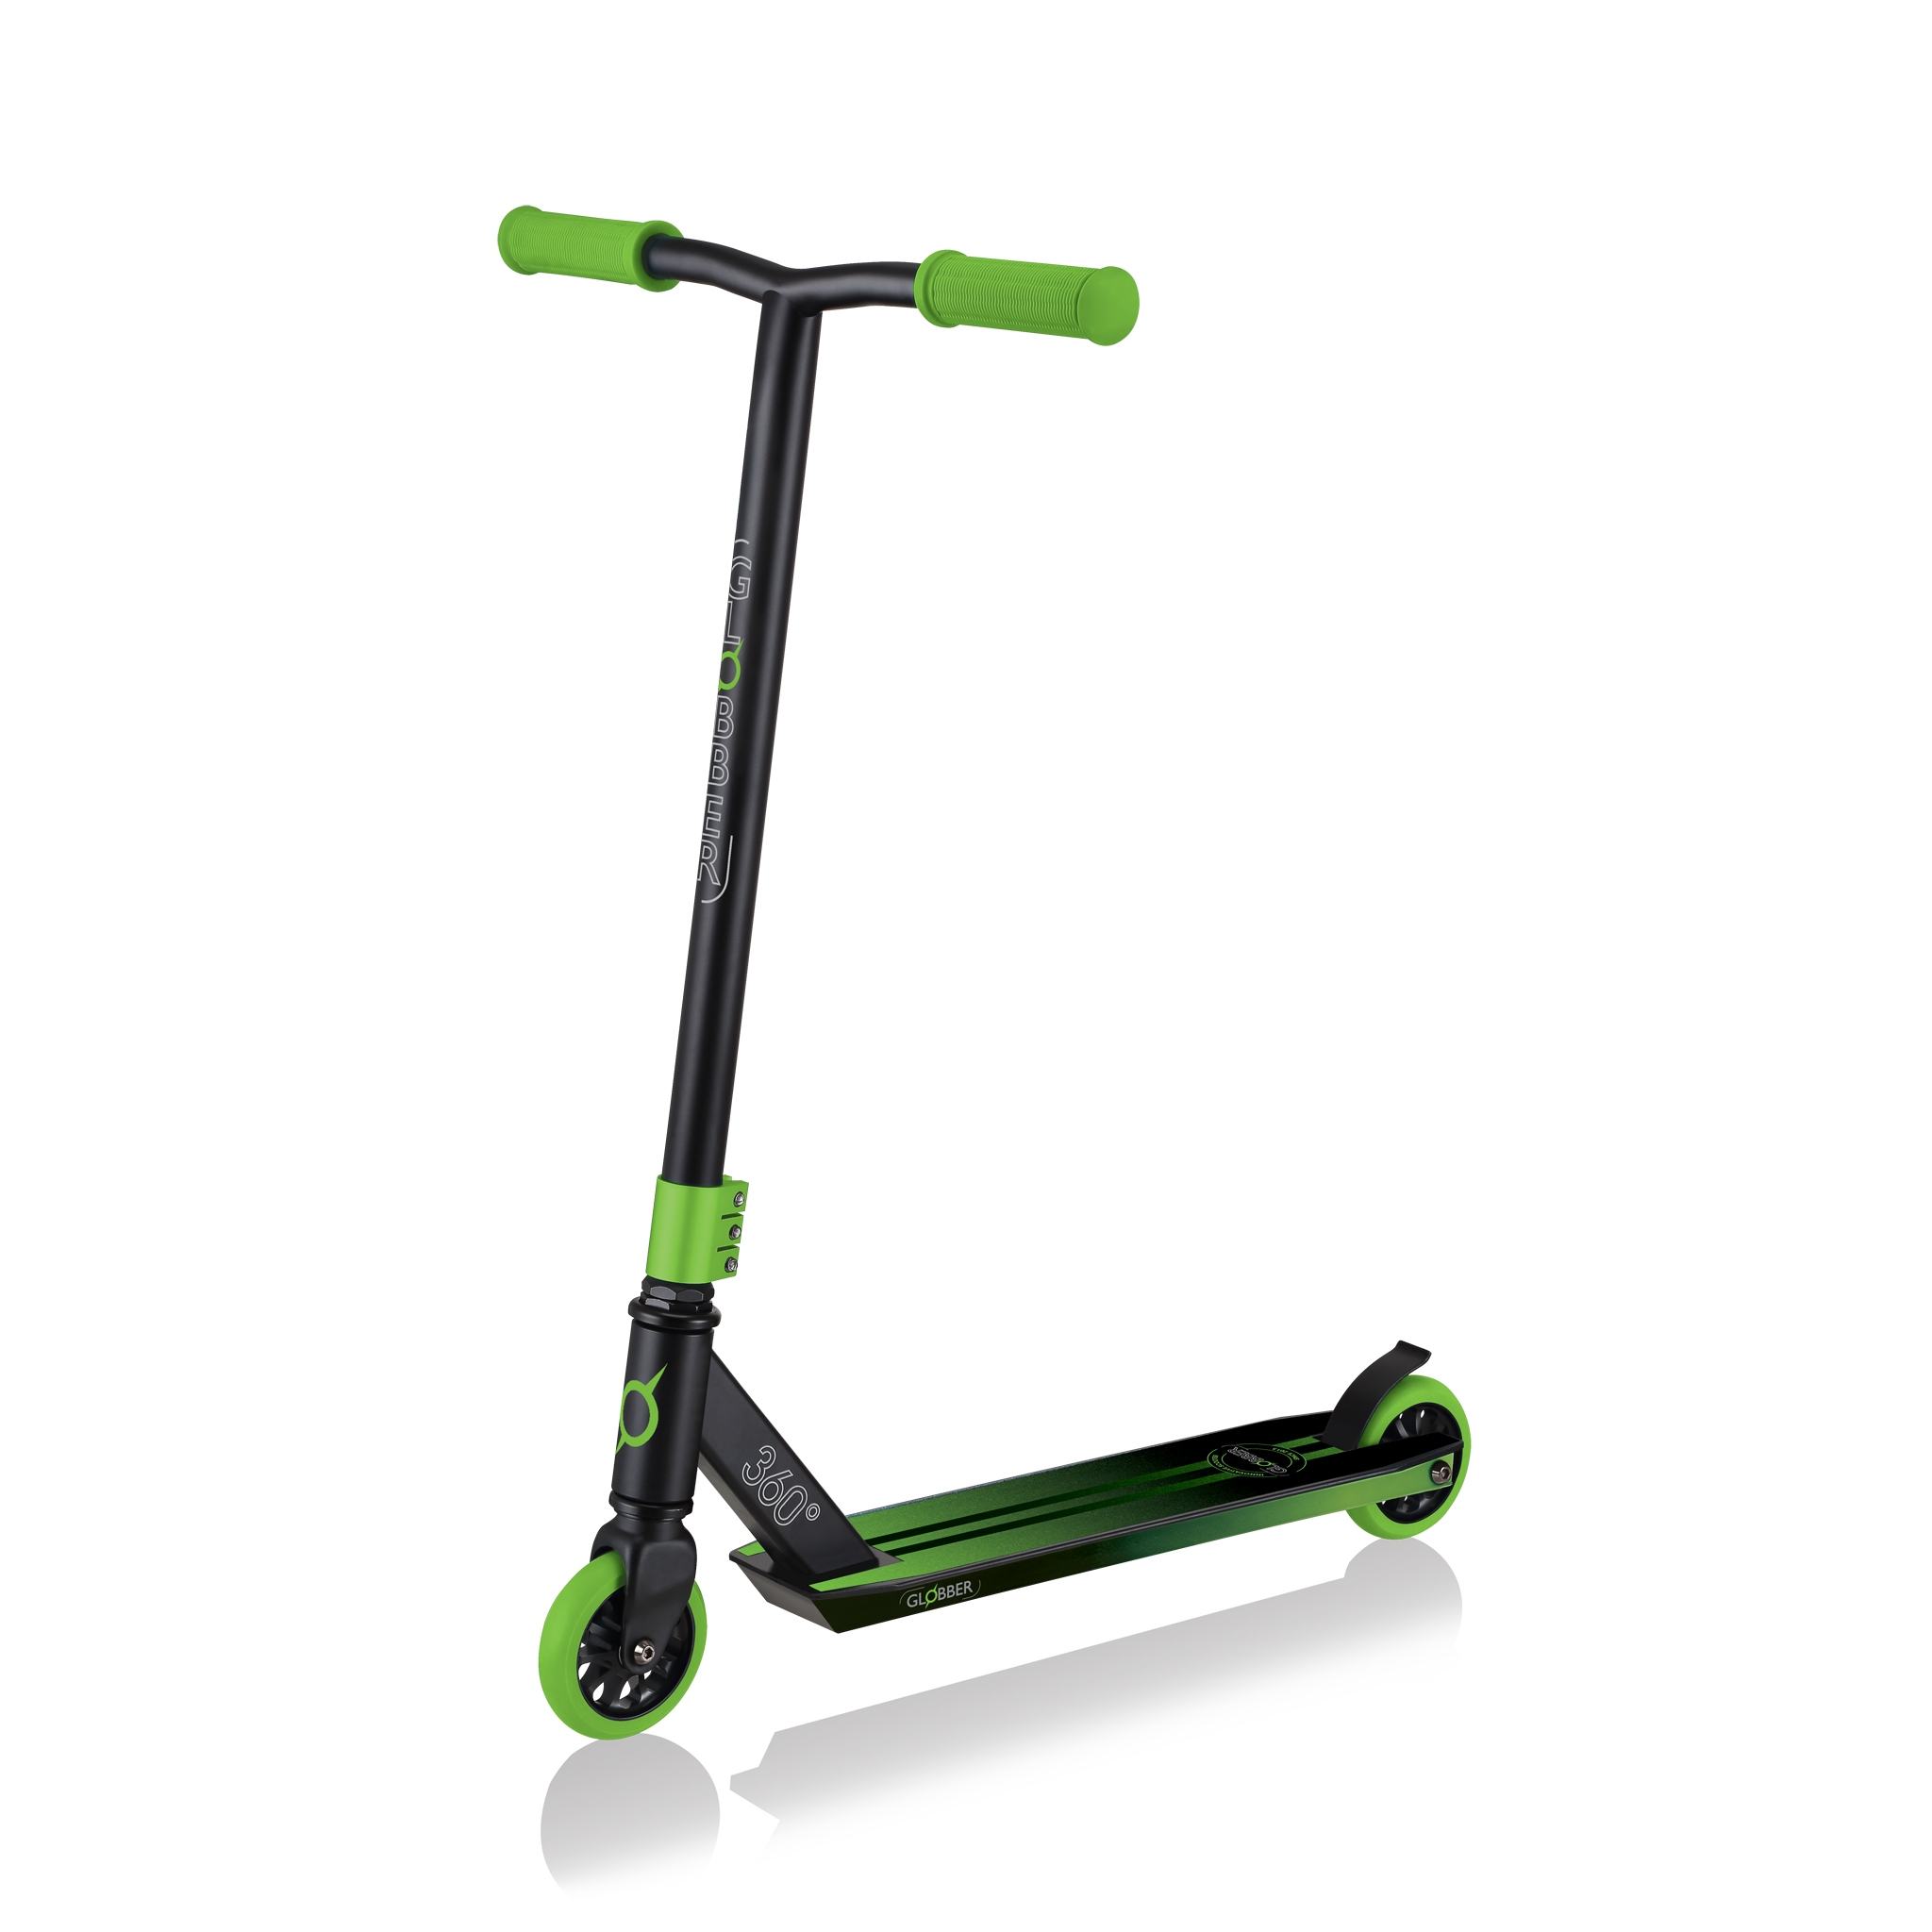 stunt-scooter-for-teens-Globber-GS360 4